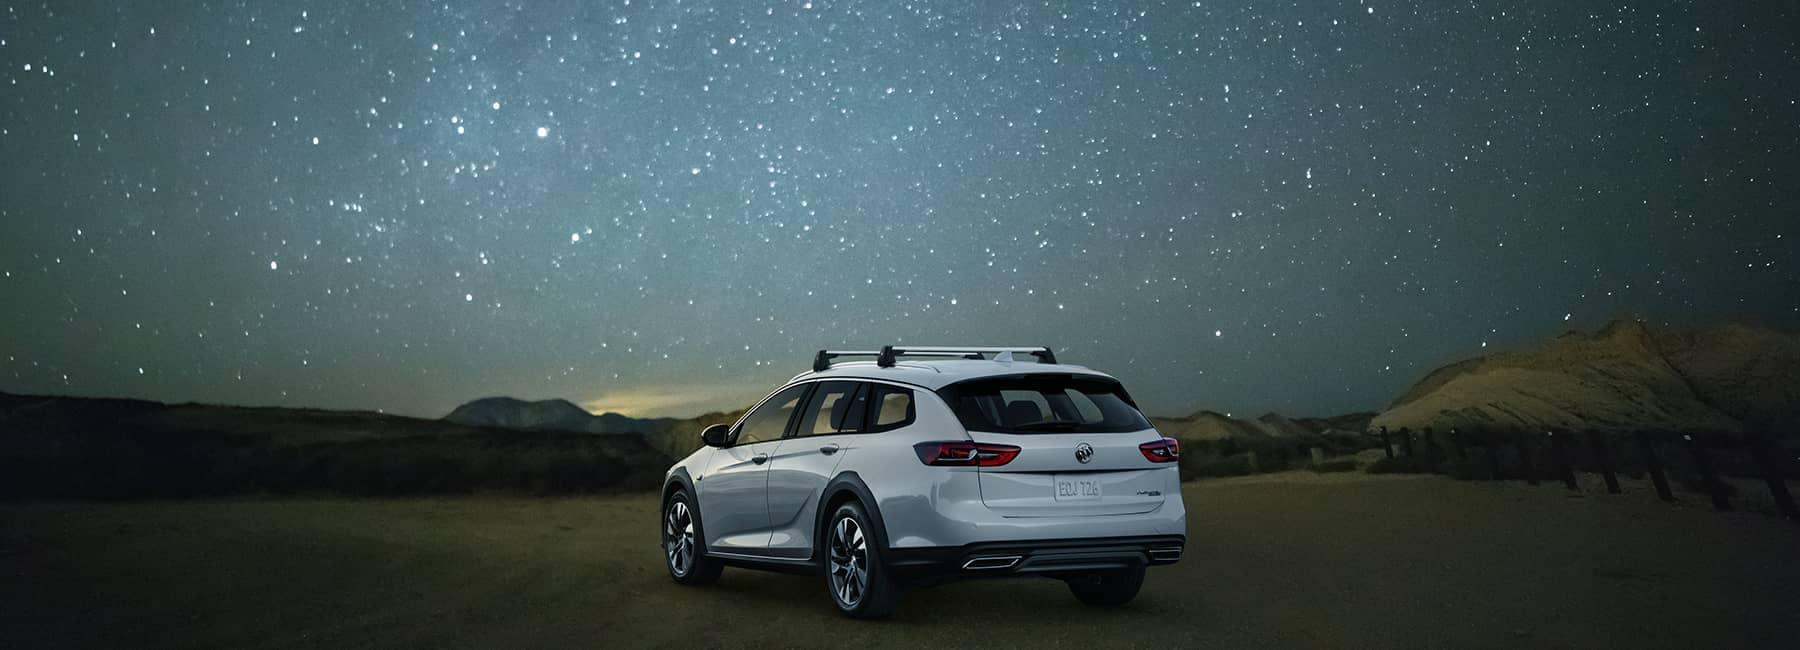 White 2020 Buick Regal TourX under a starry sky